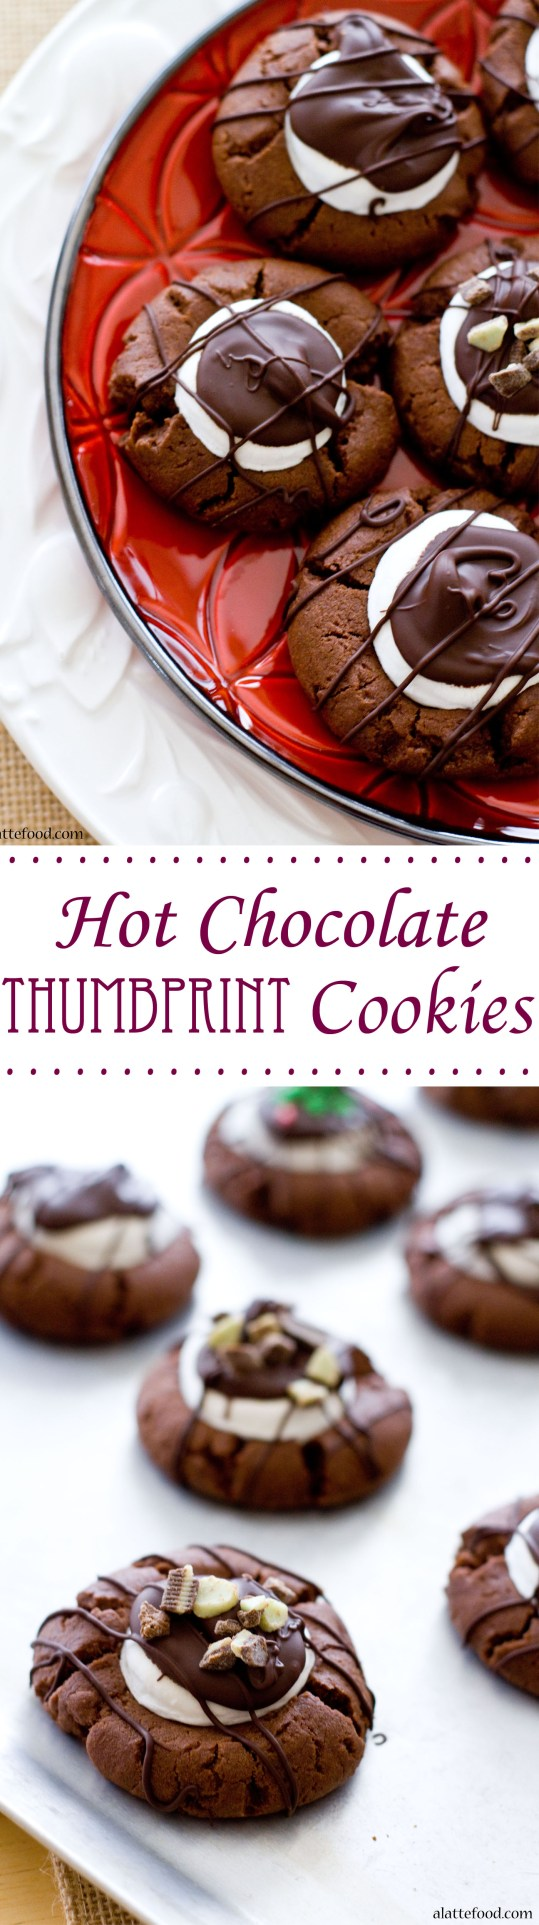 Hot Chocolate Thumbprint Cookie | A Latte Food